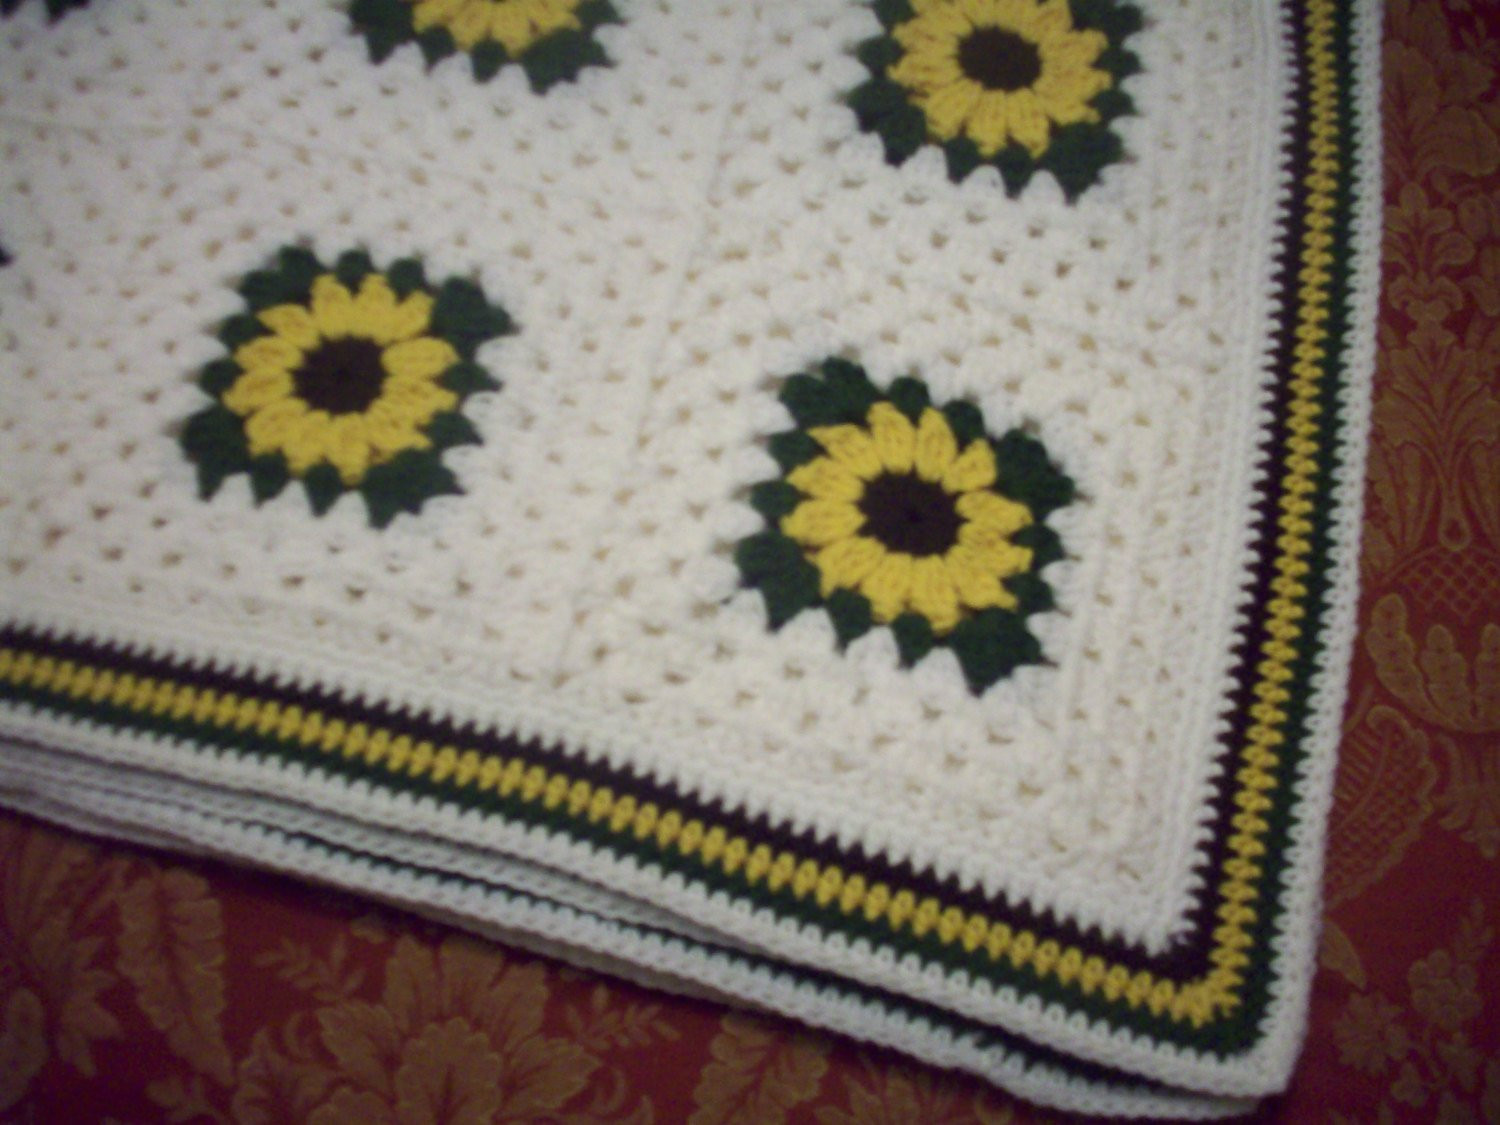 Elegant Hand Crocheted Sunflower Granny Square Blanket Afghan by Sunflower Crochet Blanket Of Elegant Hand Crocheted Sunflower Granny Square Blanket Afghan Throw Sunflower Crochet Blanket